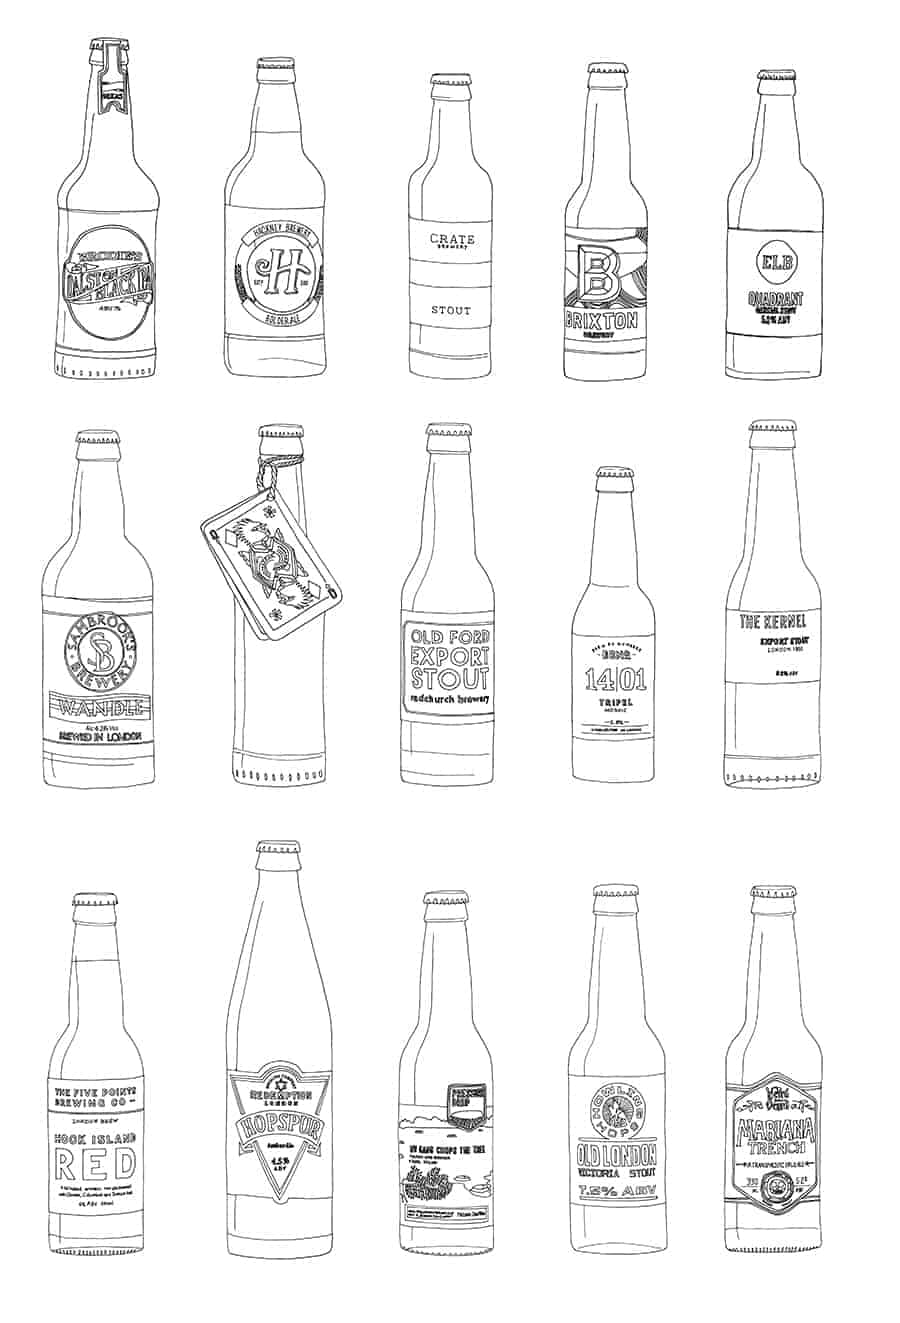 London Craft Beer Drawings illustration Jitesh Patel